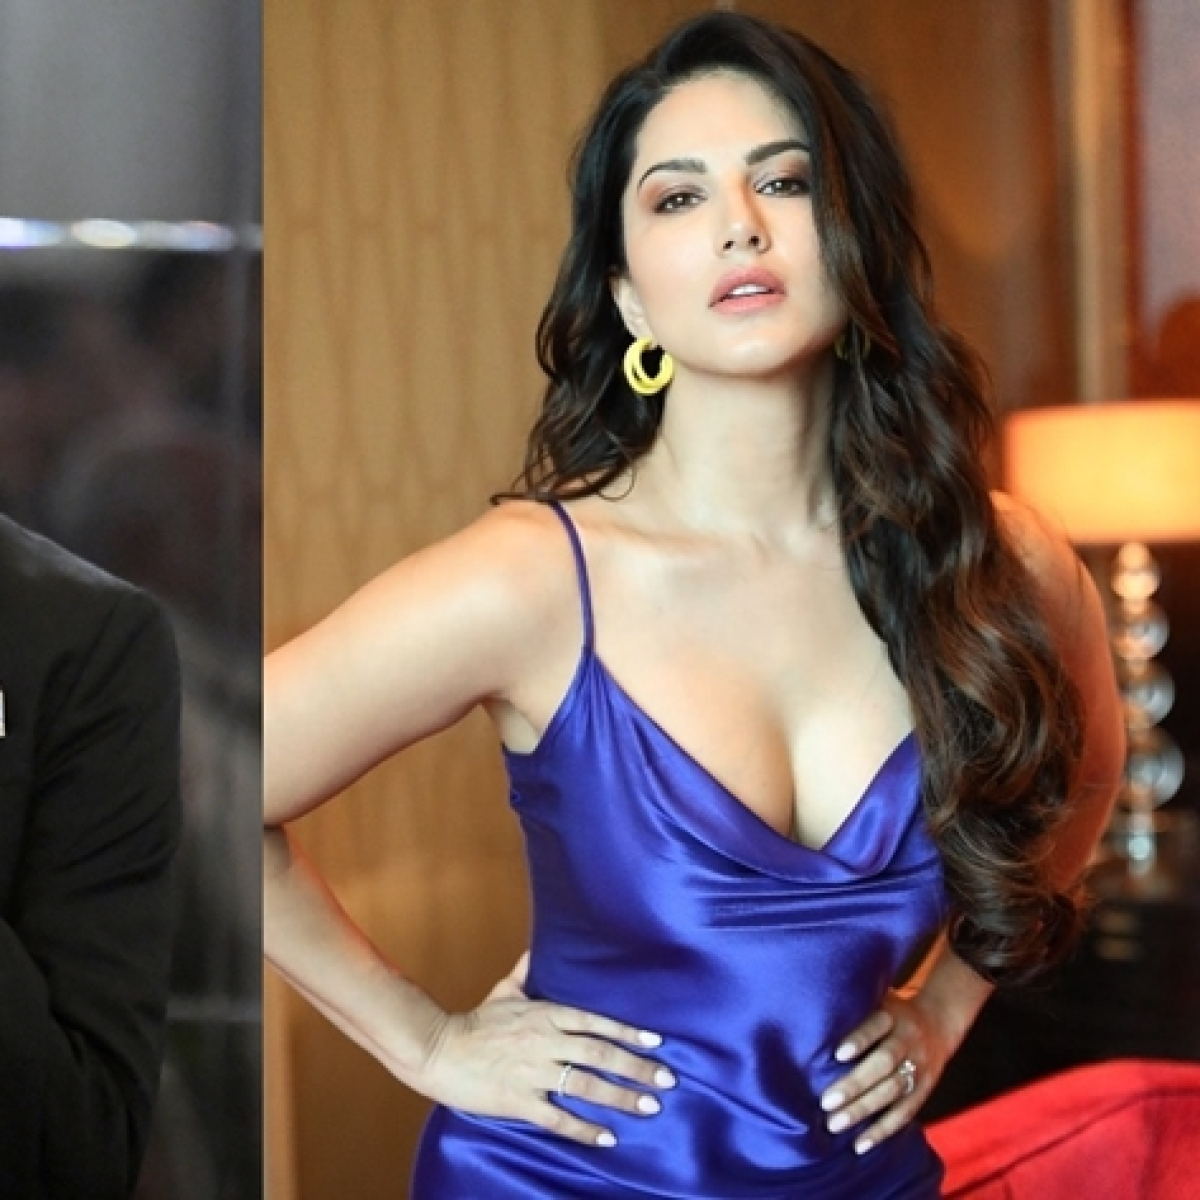 Guzar Jayega: From Amitabh Bachchan to Sunny Leone - over 60 celebs in new song spread positivity amid COVID-19